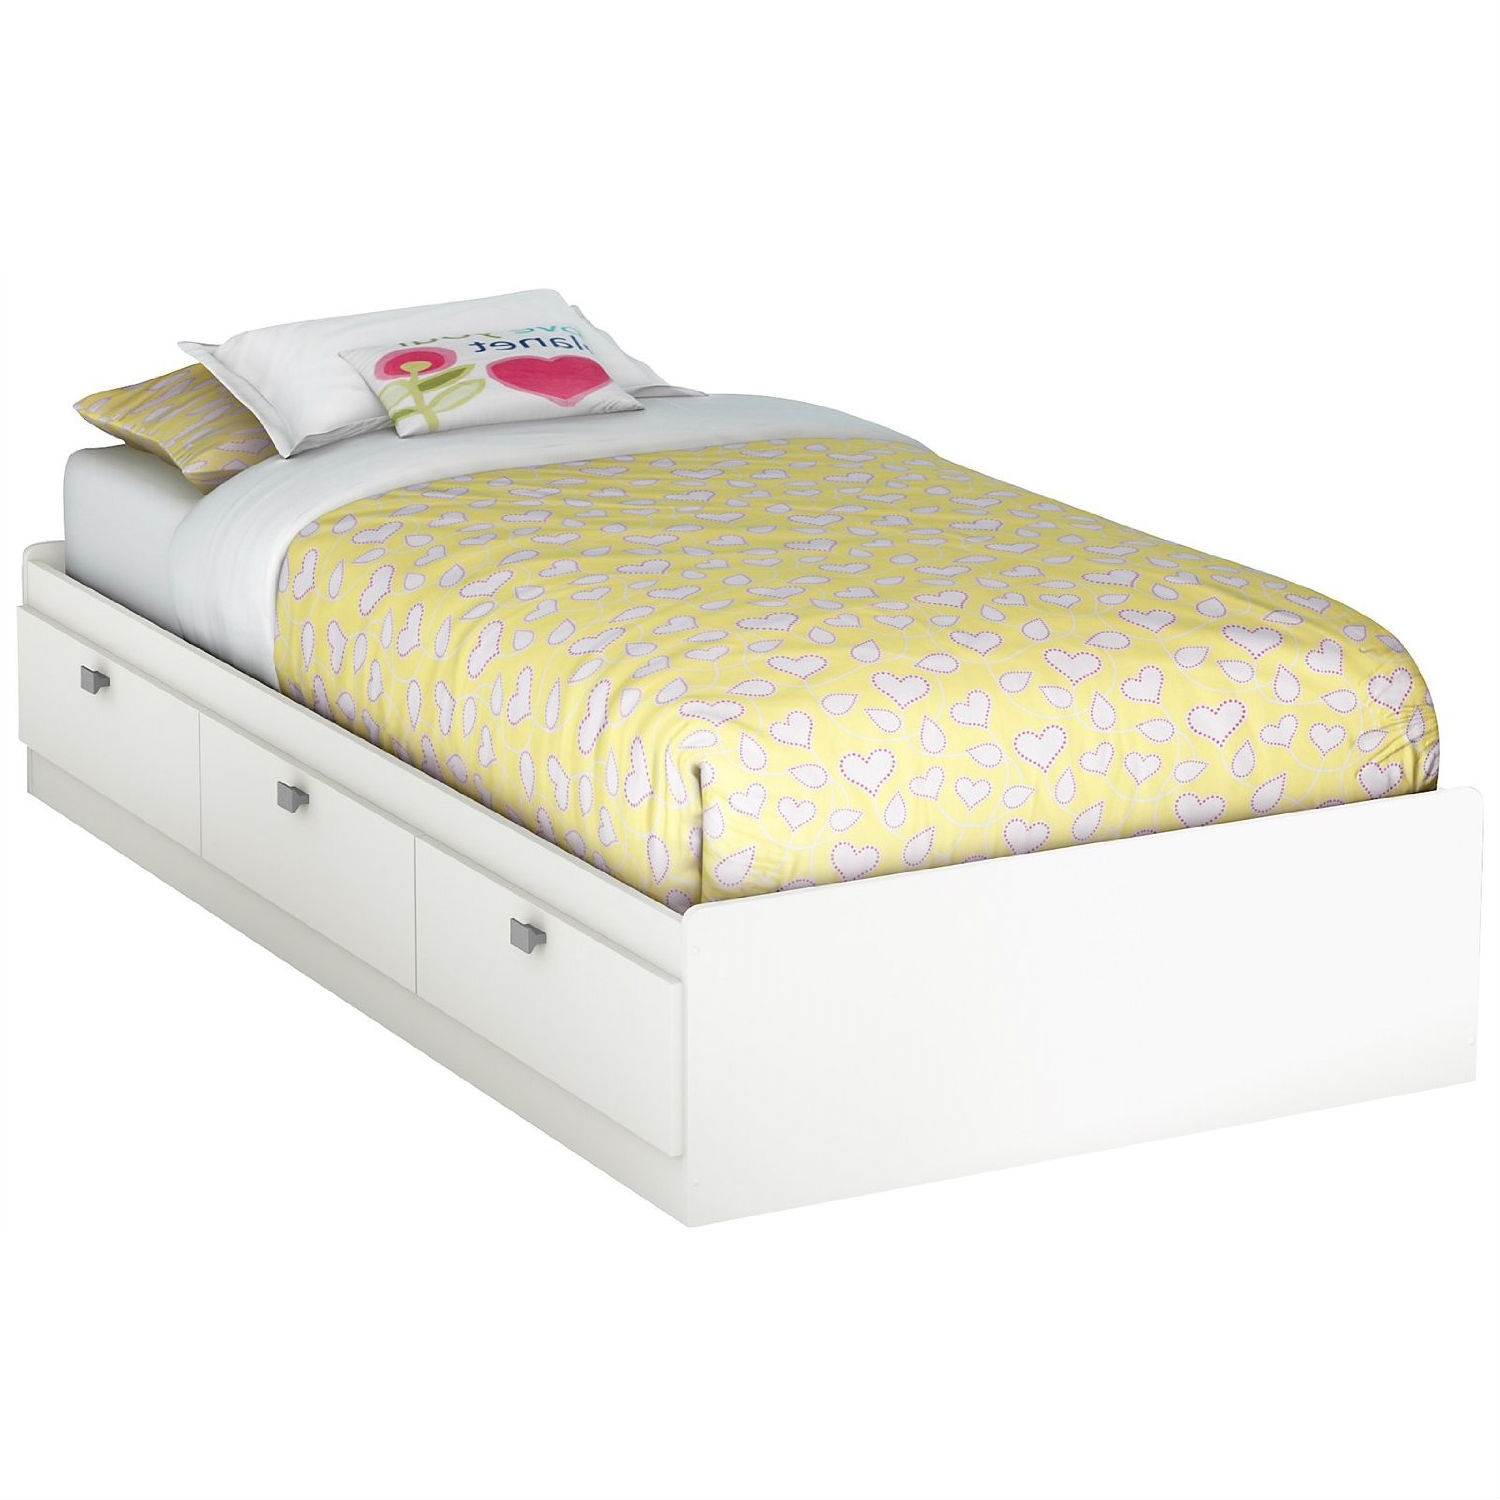 white platform bed with drawers. Twin Size White Platform Bed For Kids Teens Adults With 3 Storage Drawers